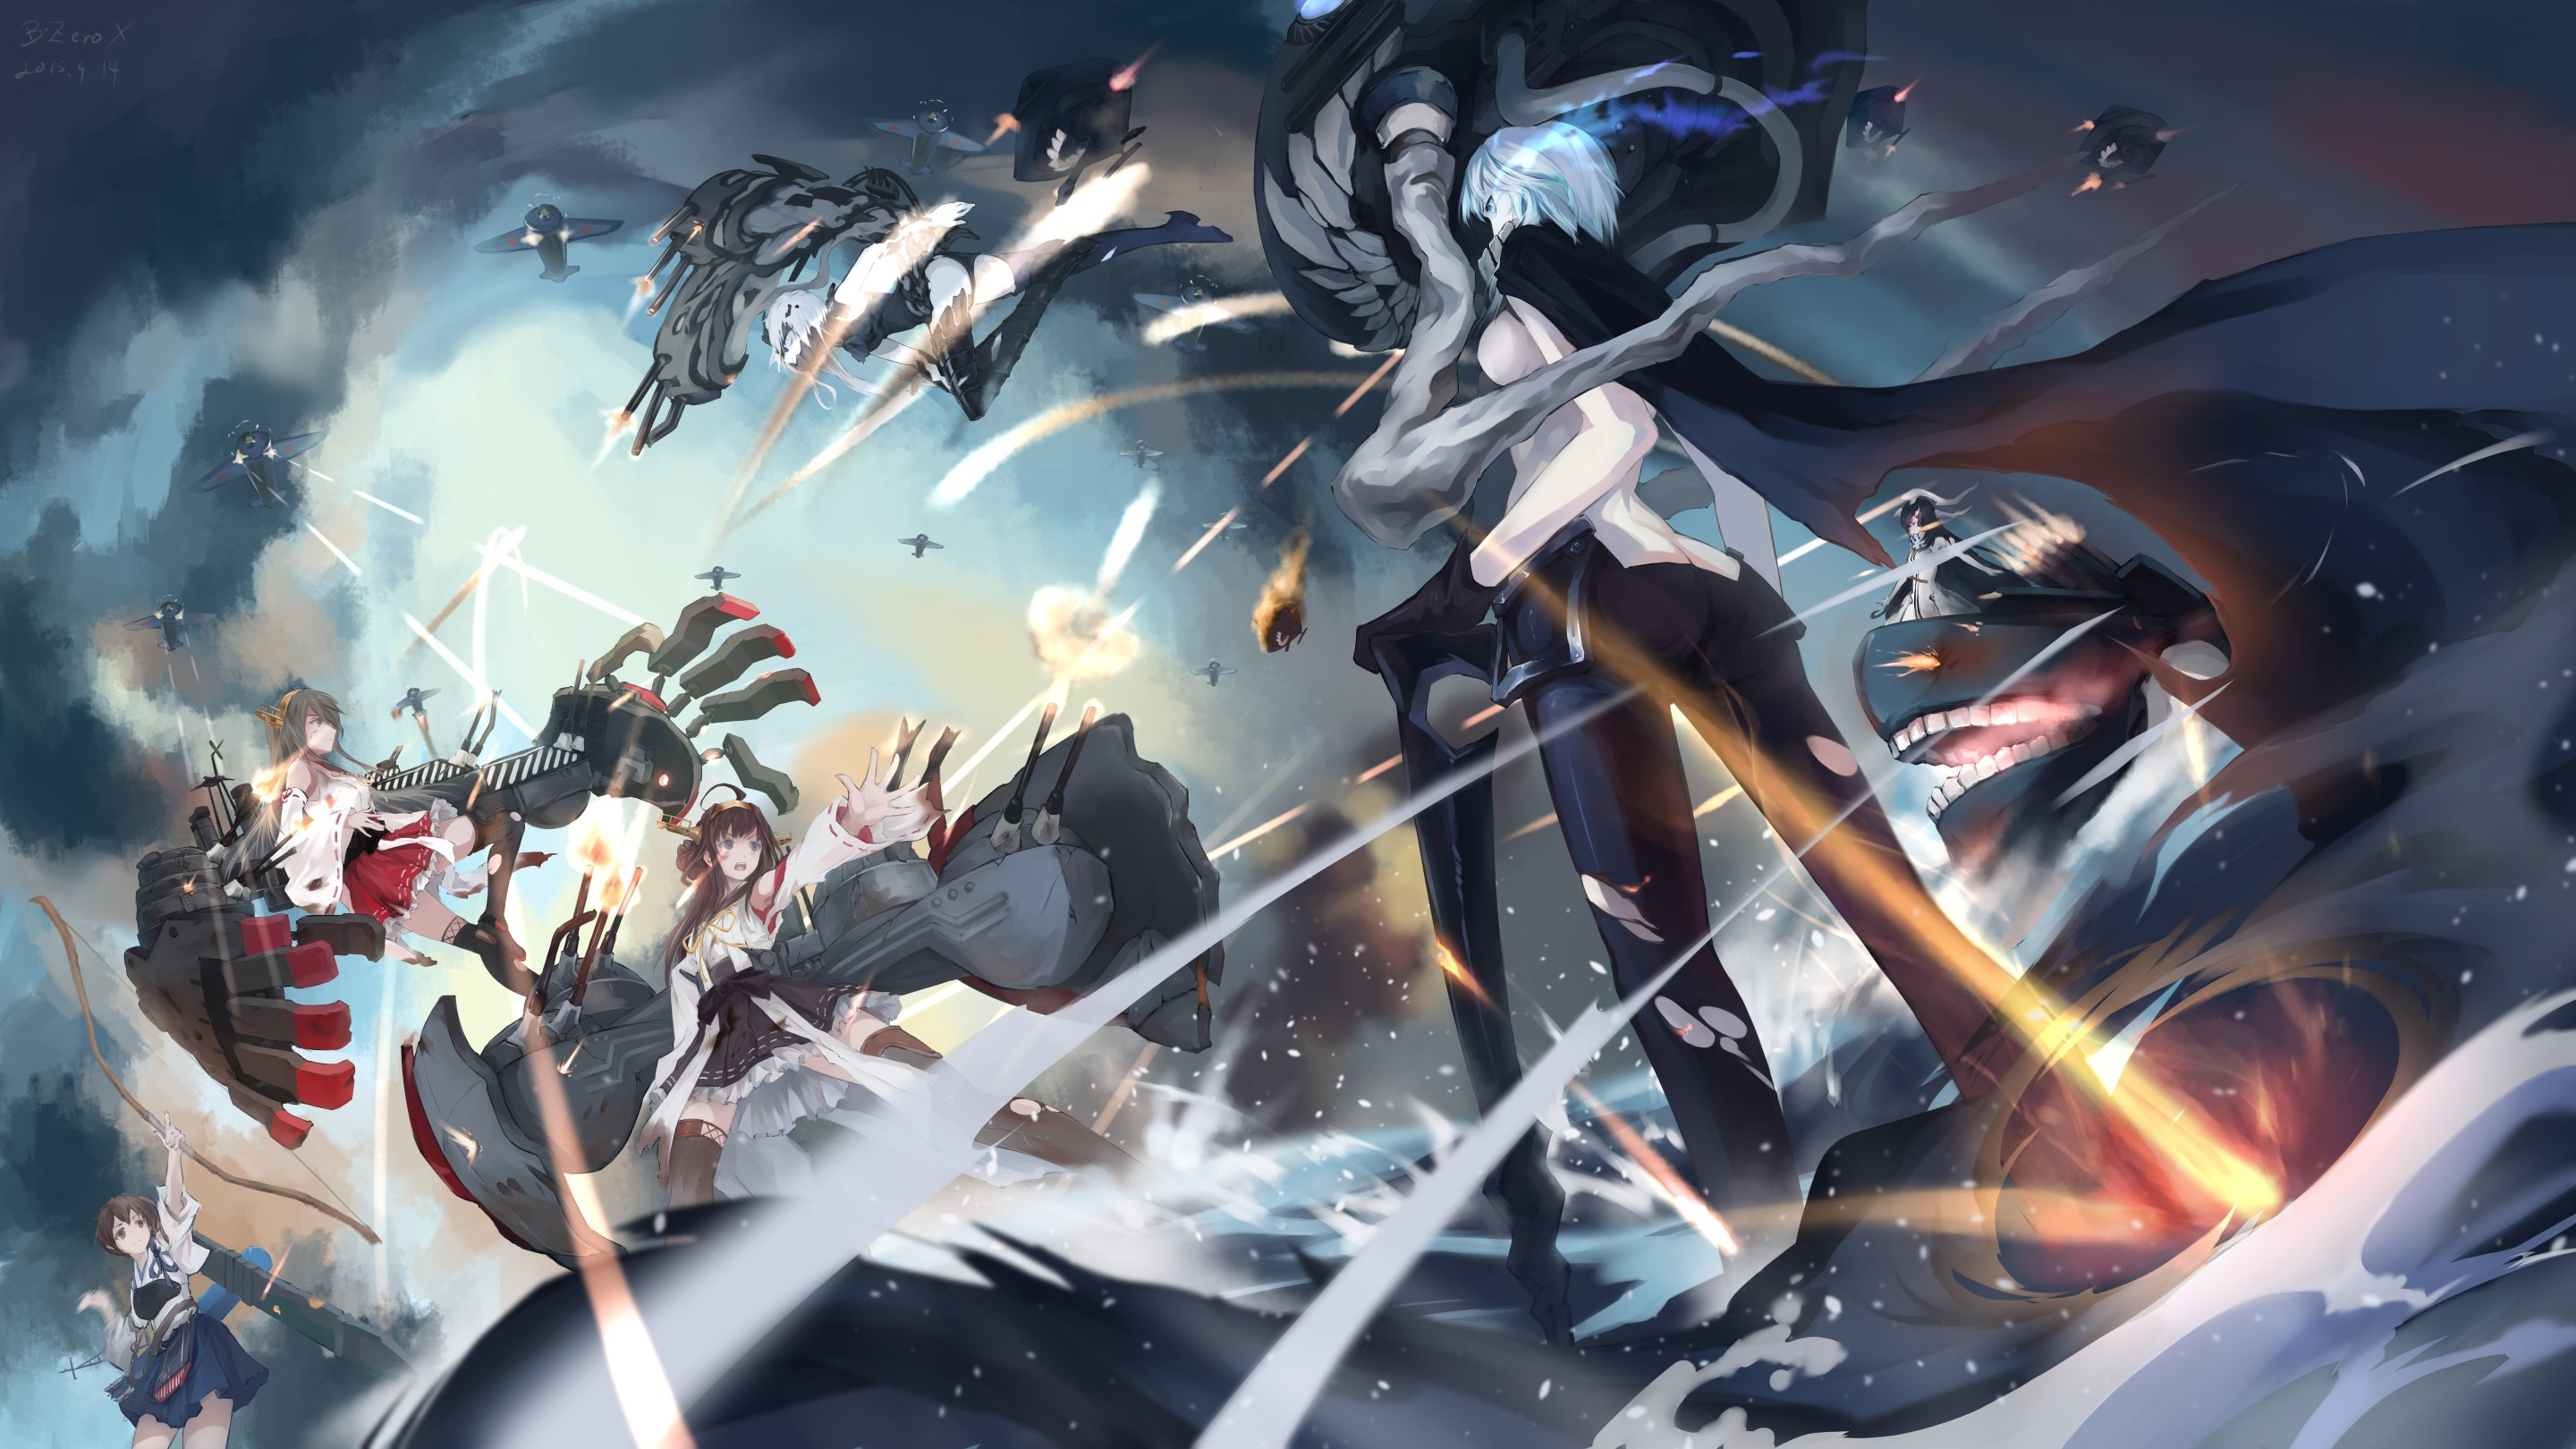 Kantai Collection HD Wallpaper Background Image 2880x1620 ID 2880x1620